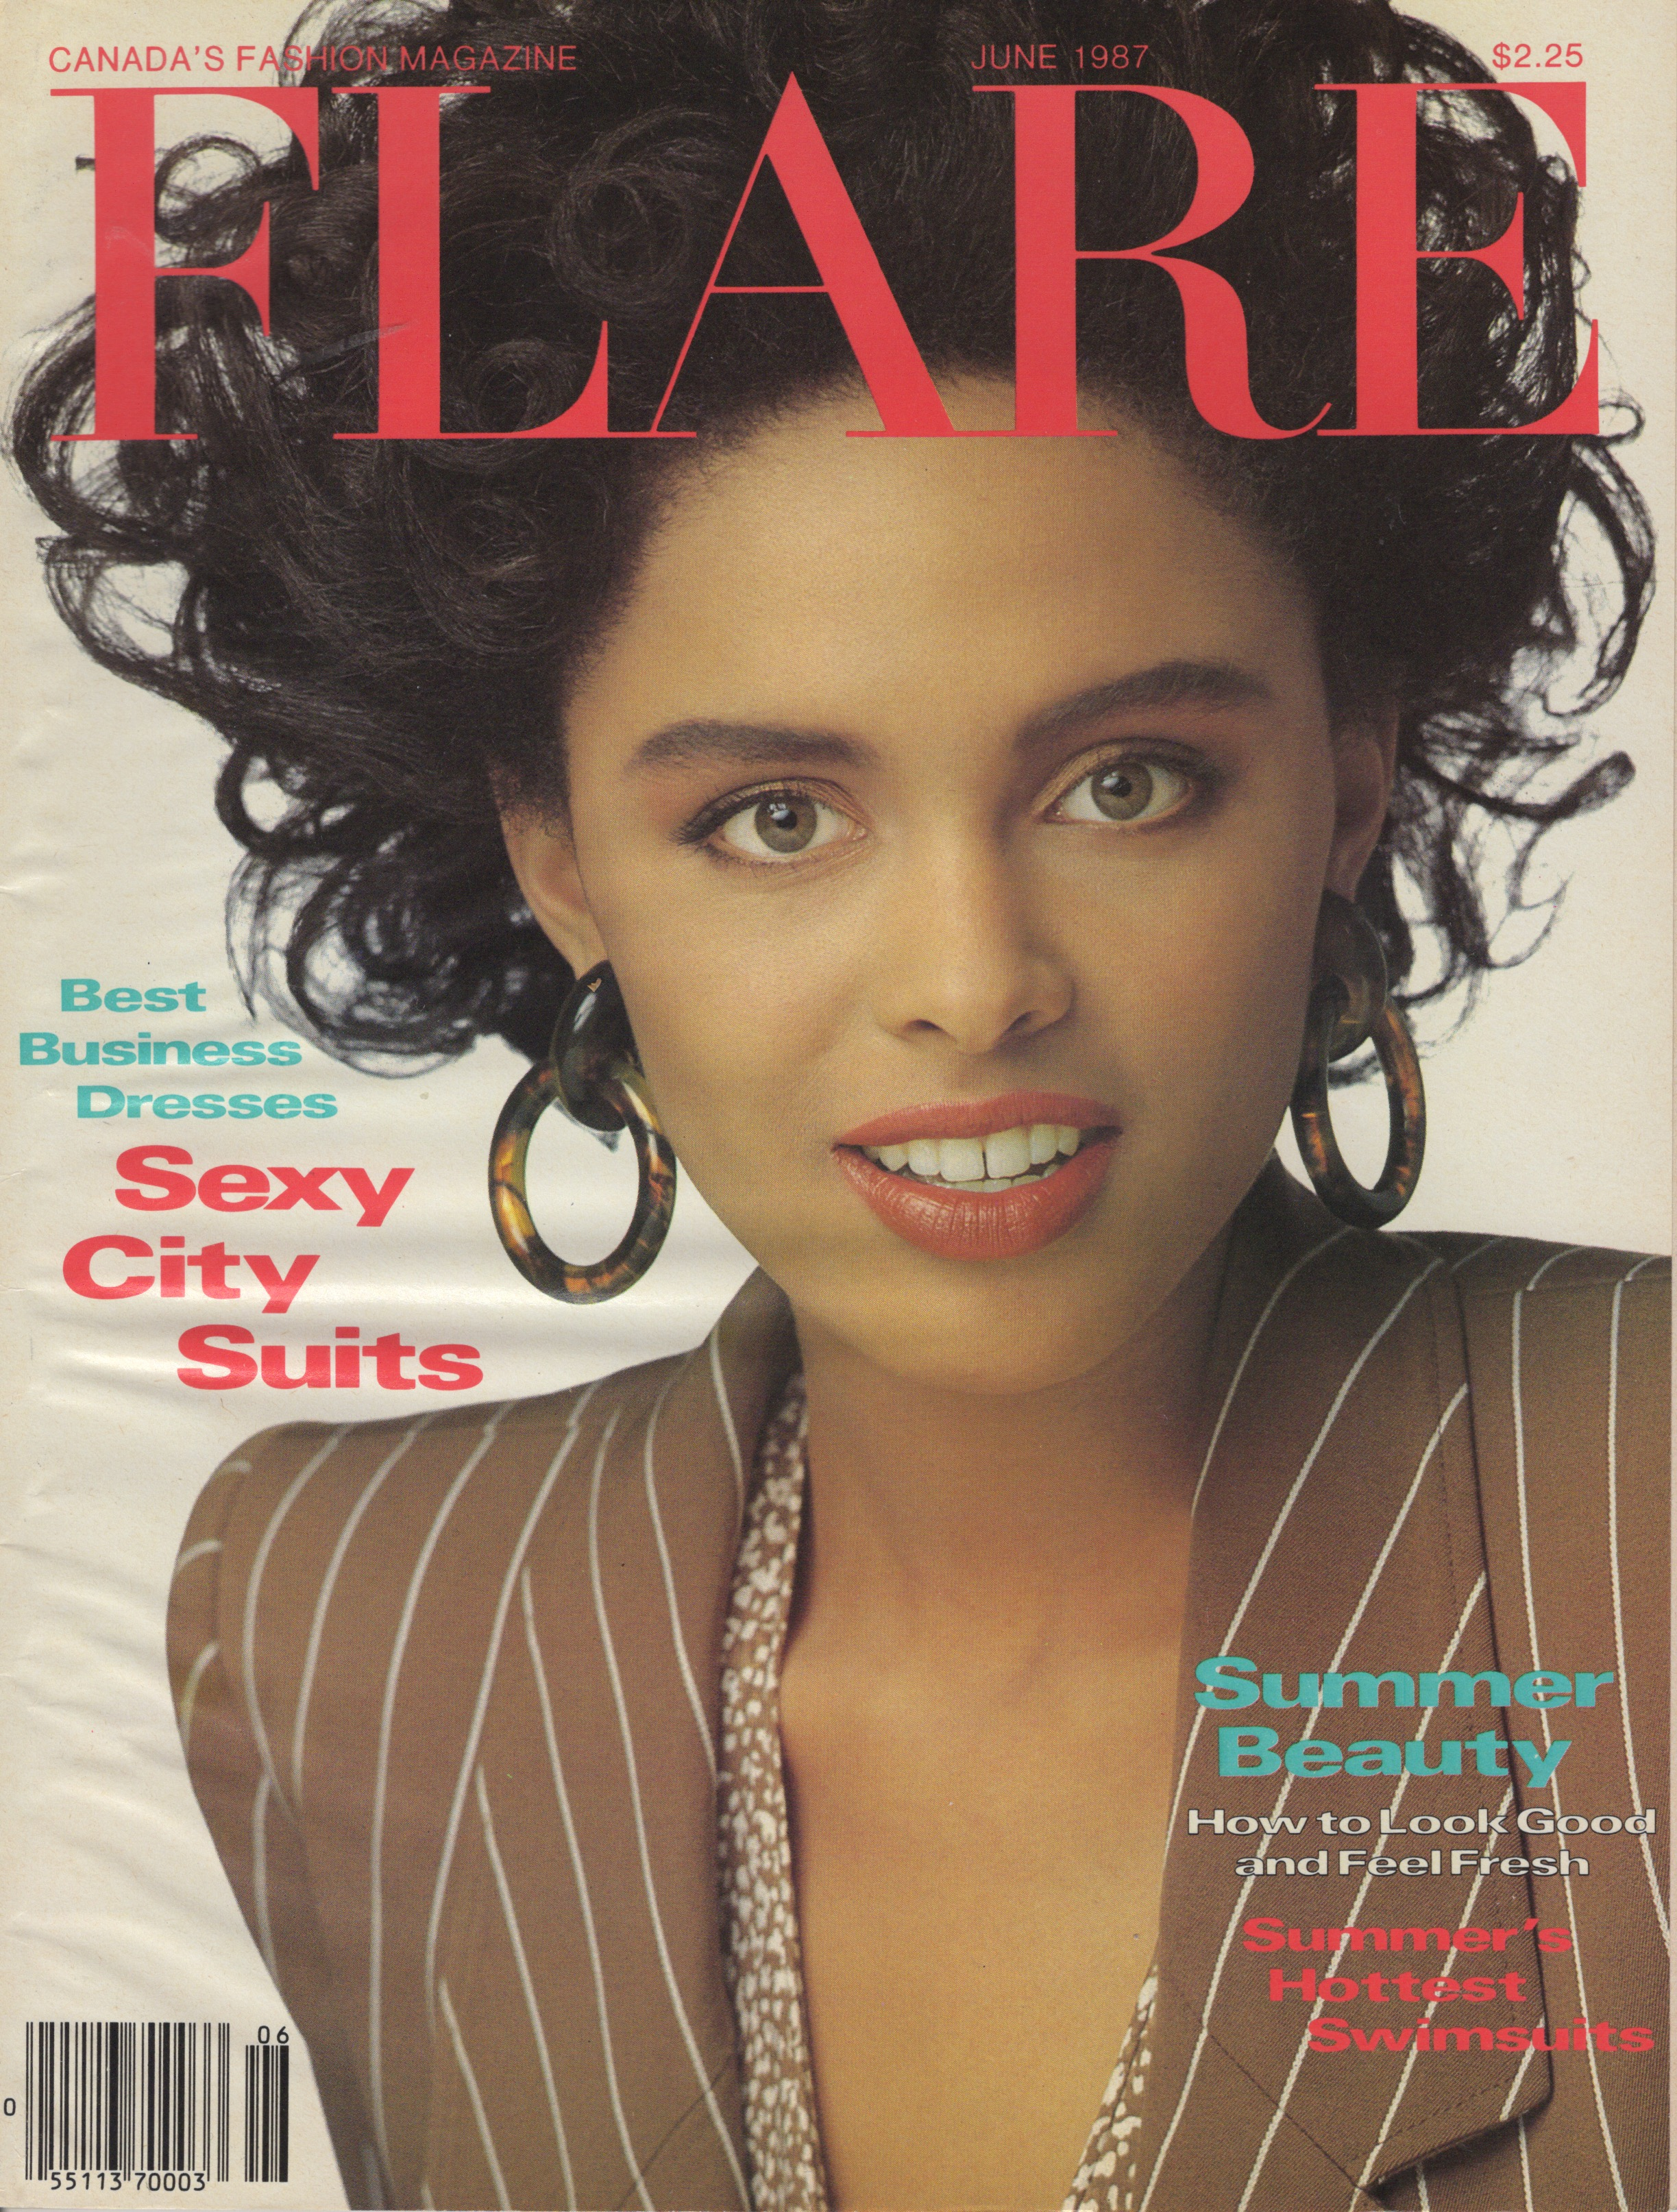 Flare 1987 Cover copy.jpeg